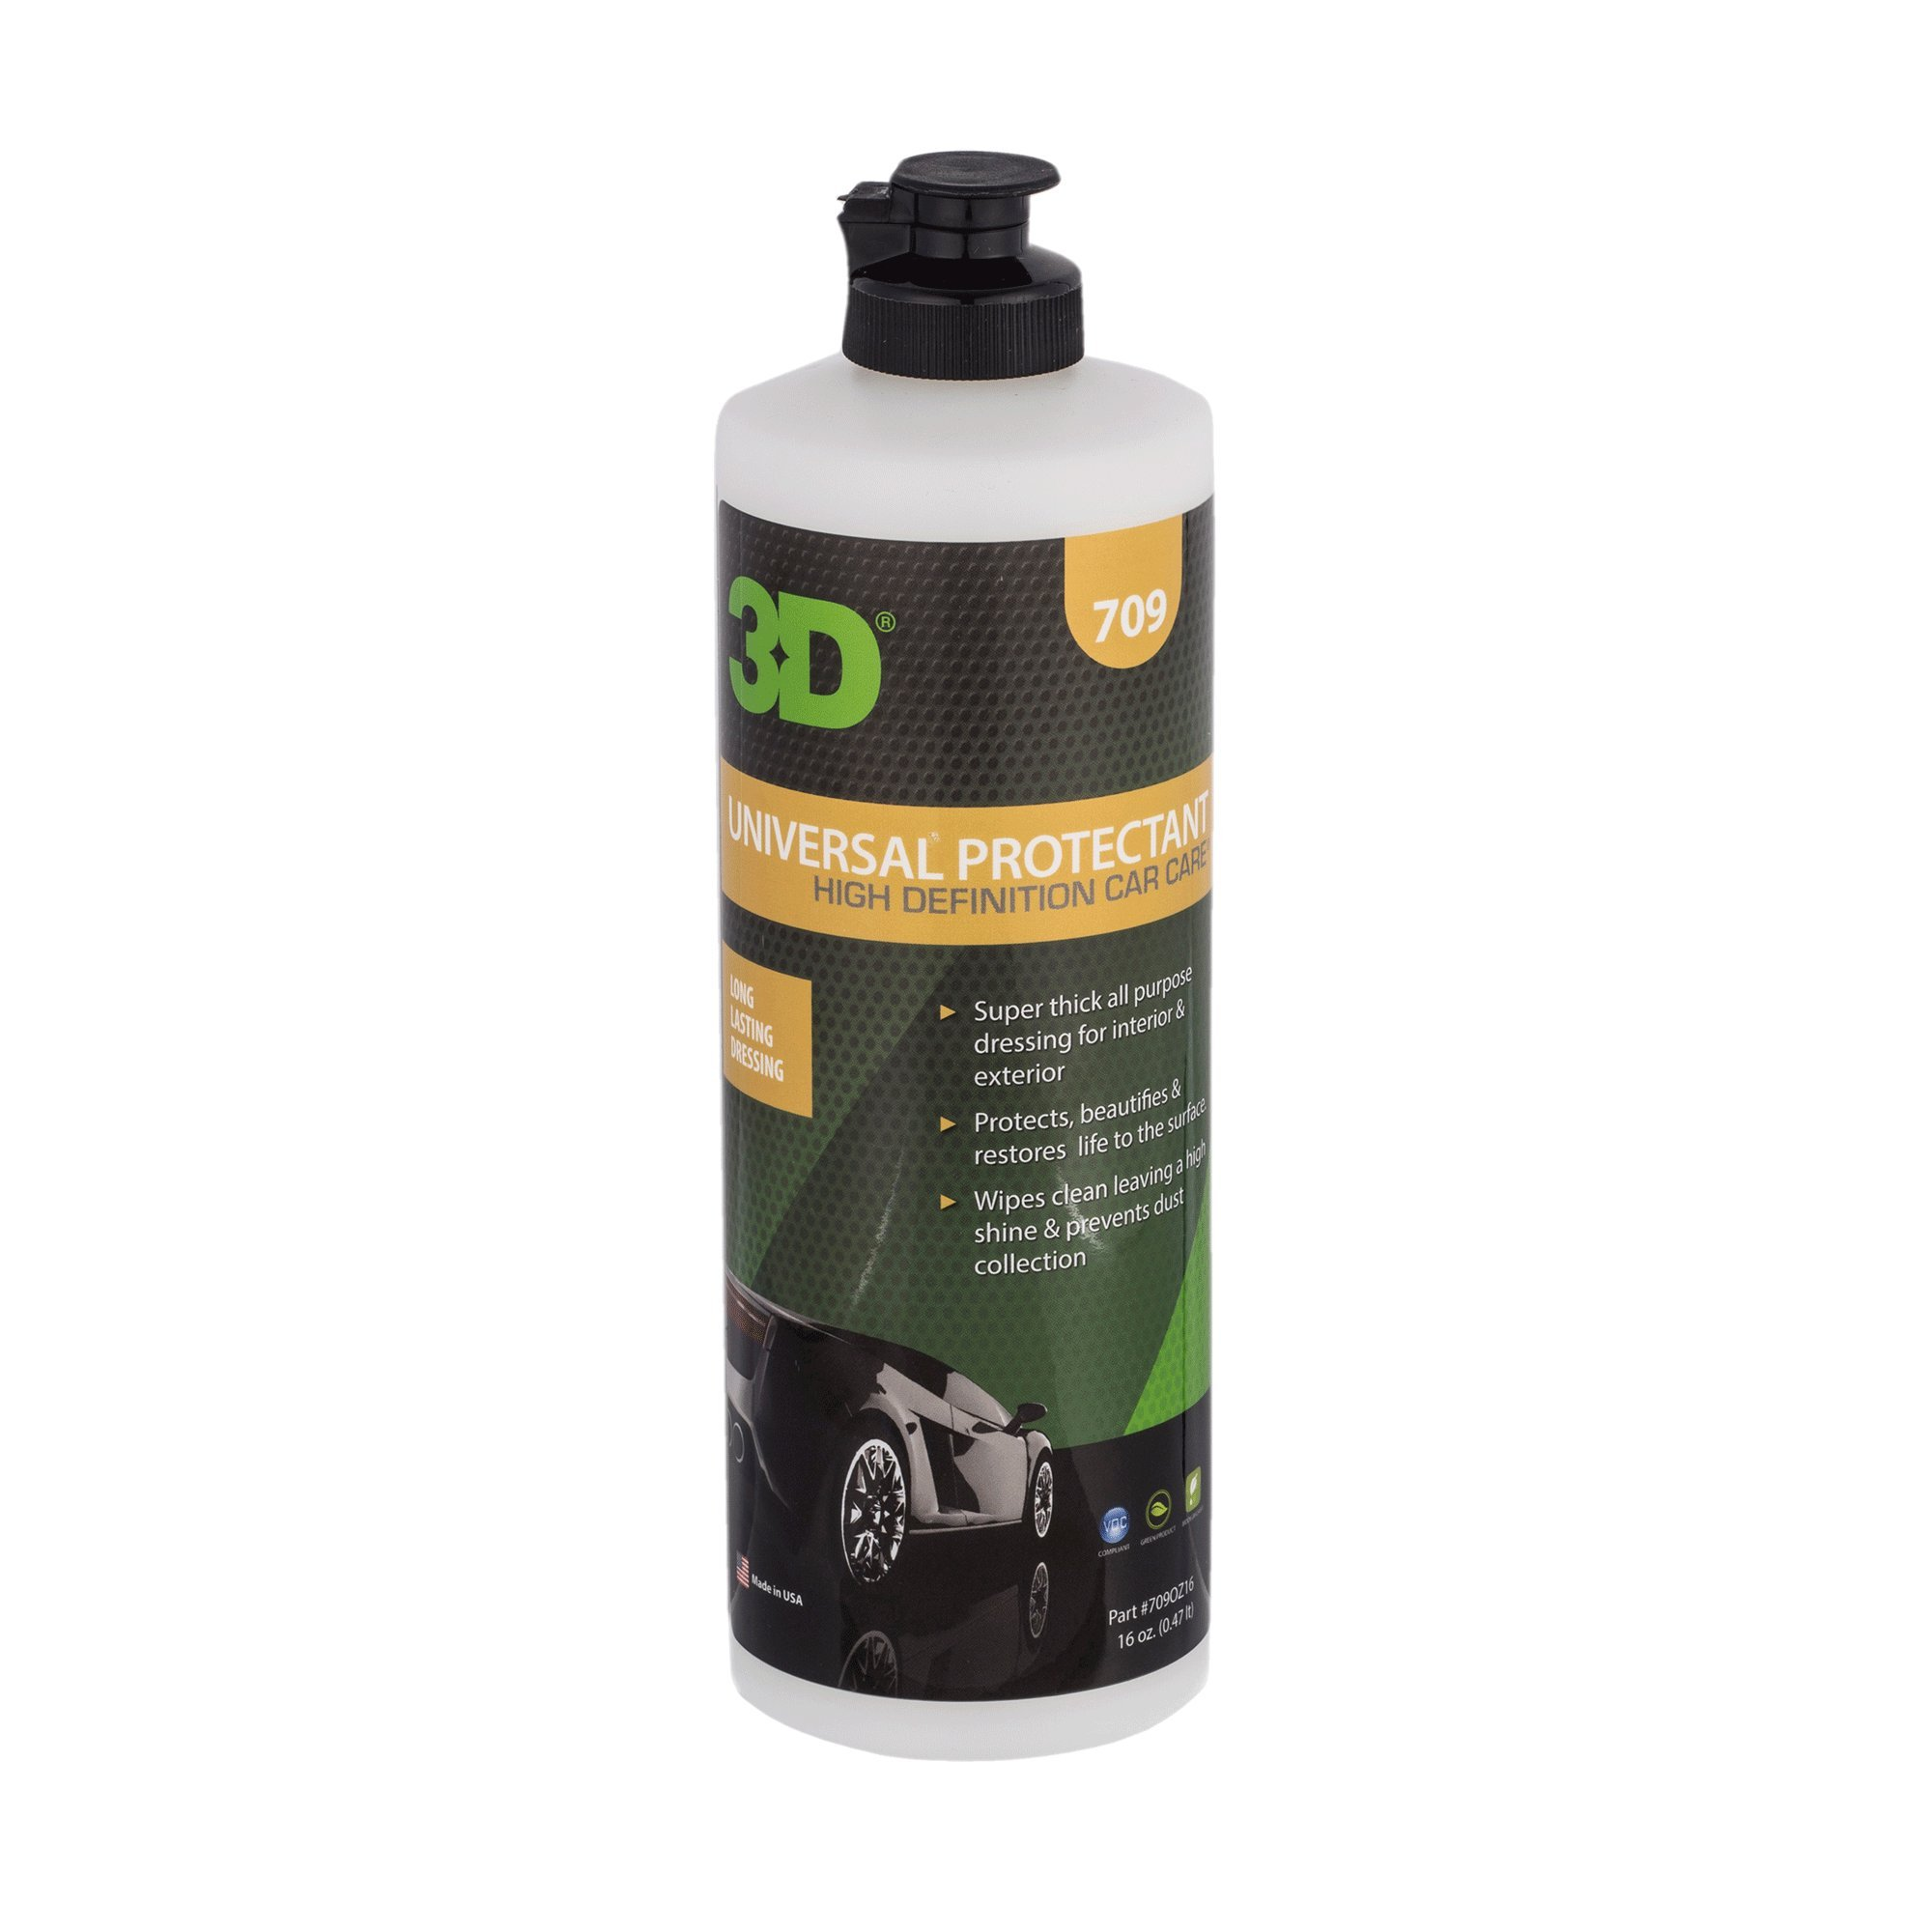 Universal Protectant - Tire Dressing - 16 oz